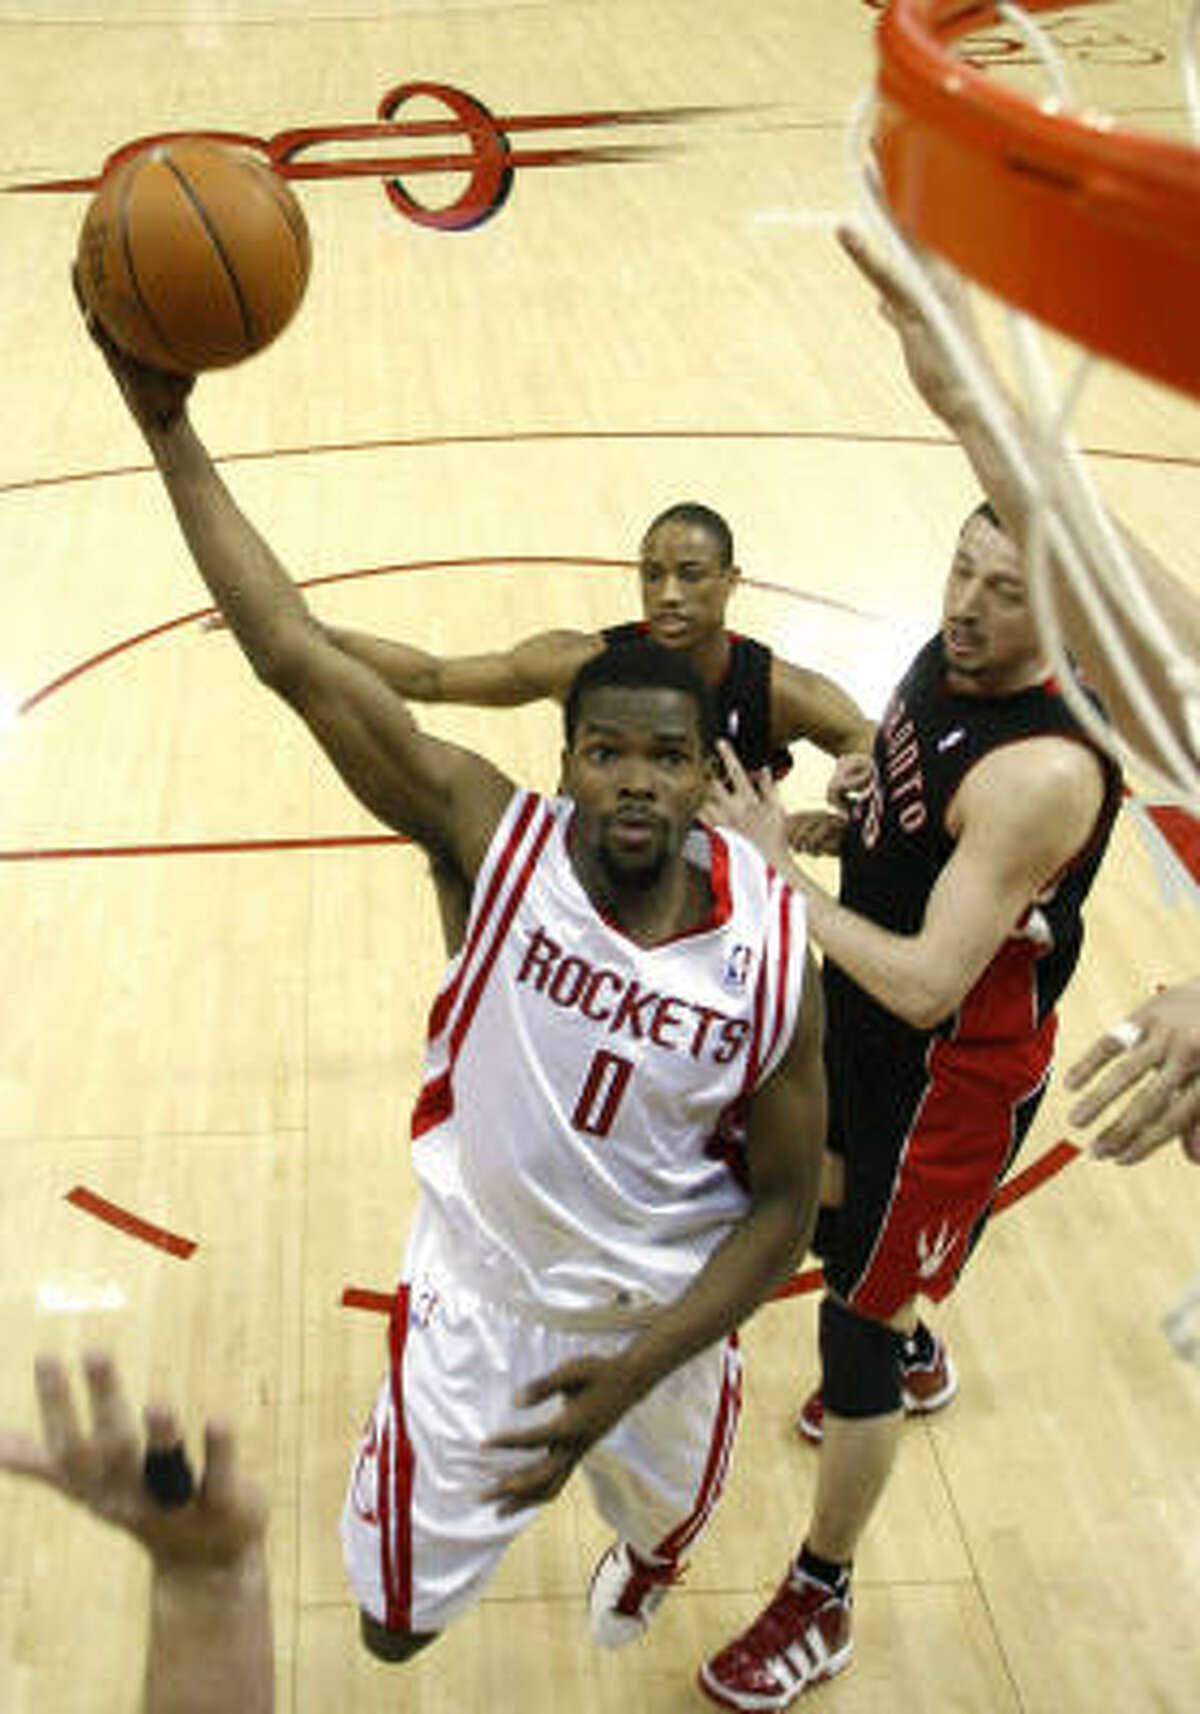 Rockets guard Aaron Brooks drives to the basket past Hedo Turkoglu, right.